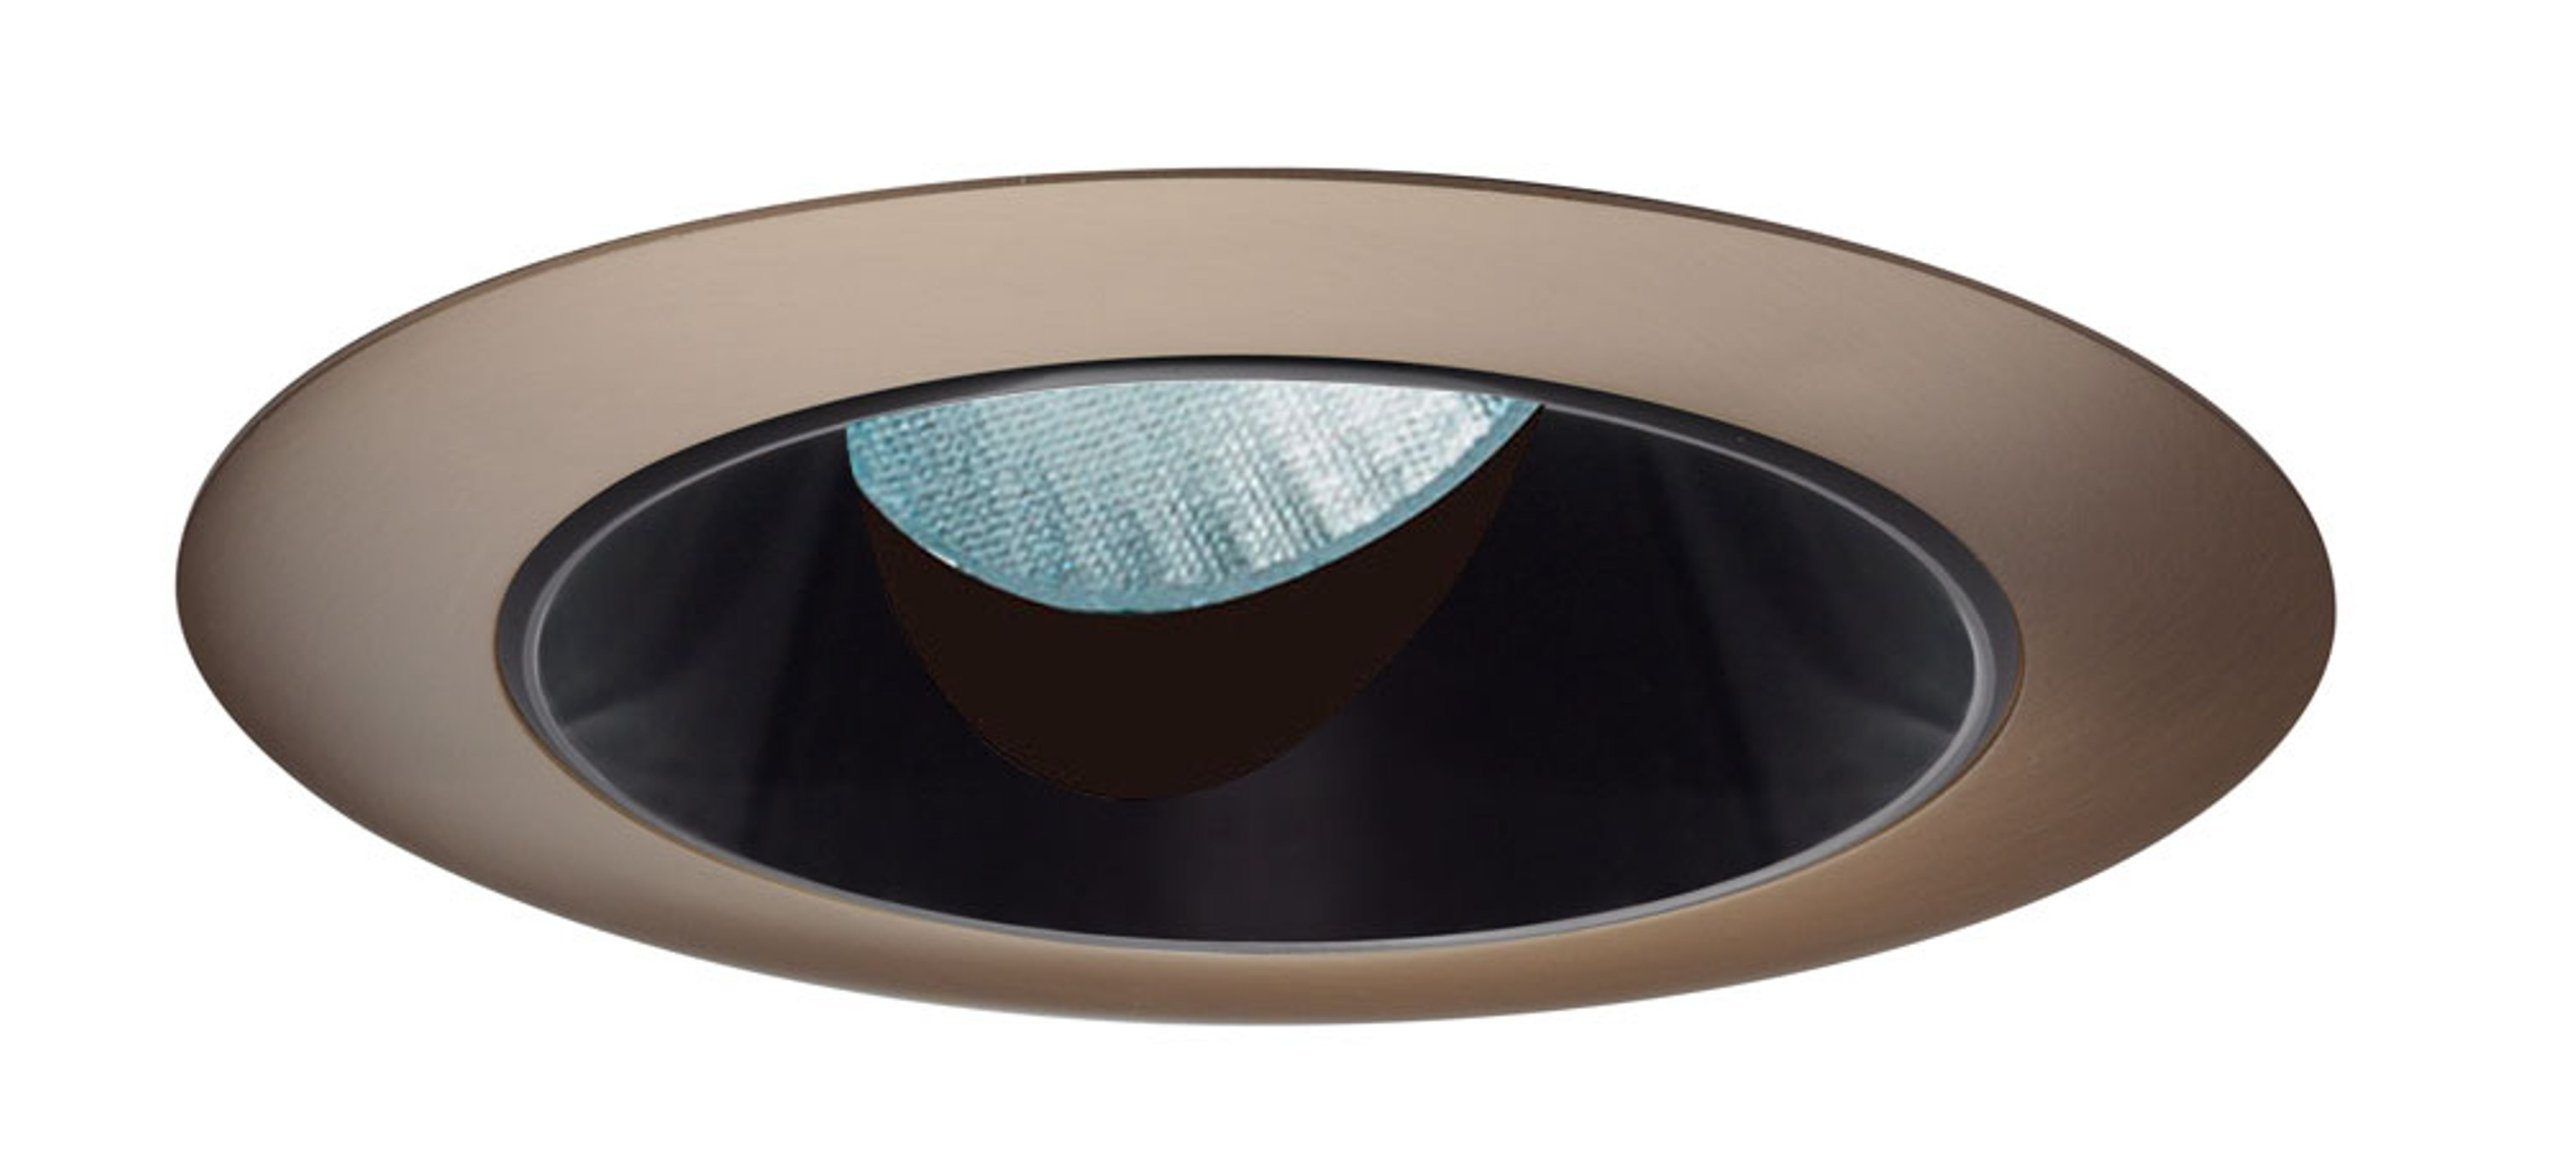 Juno Lighting Group 436NB-ABZ Aculux 4IN Adjustable Angle-Cut Cone Recessed Trim, Black Alzak Reflector with an Aged Bronze Trim Ring by Juno Lighting Group